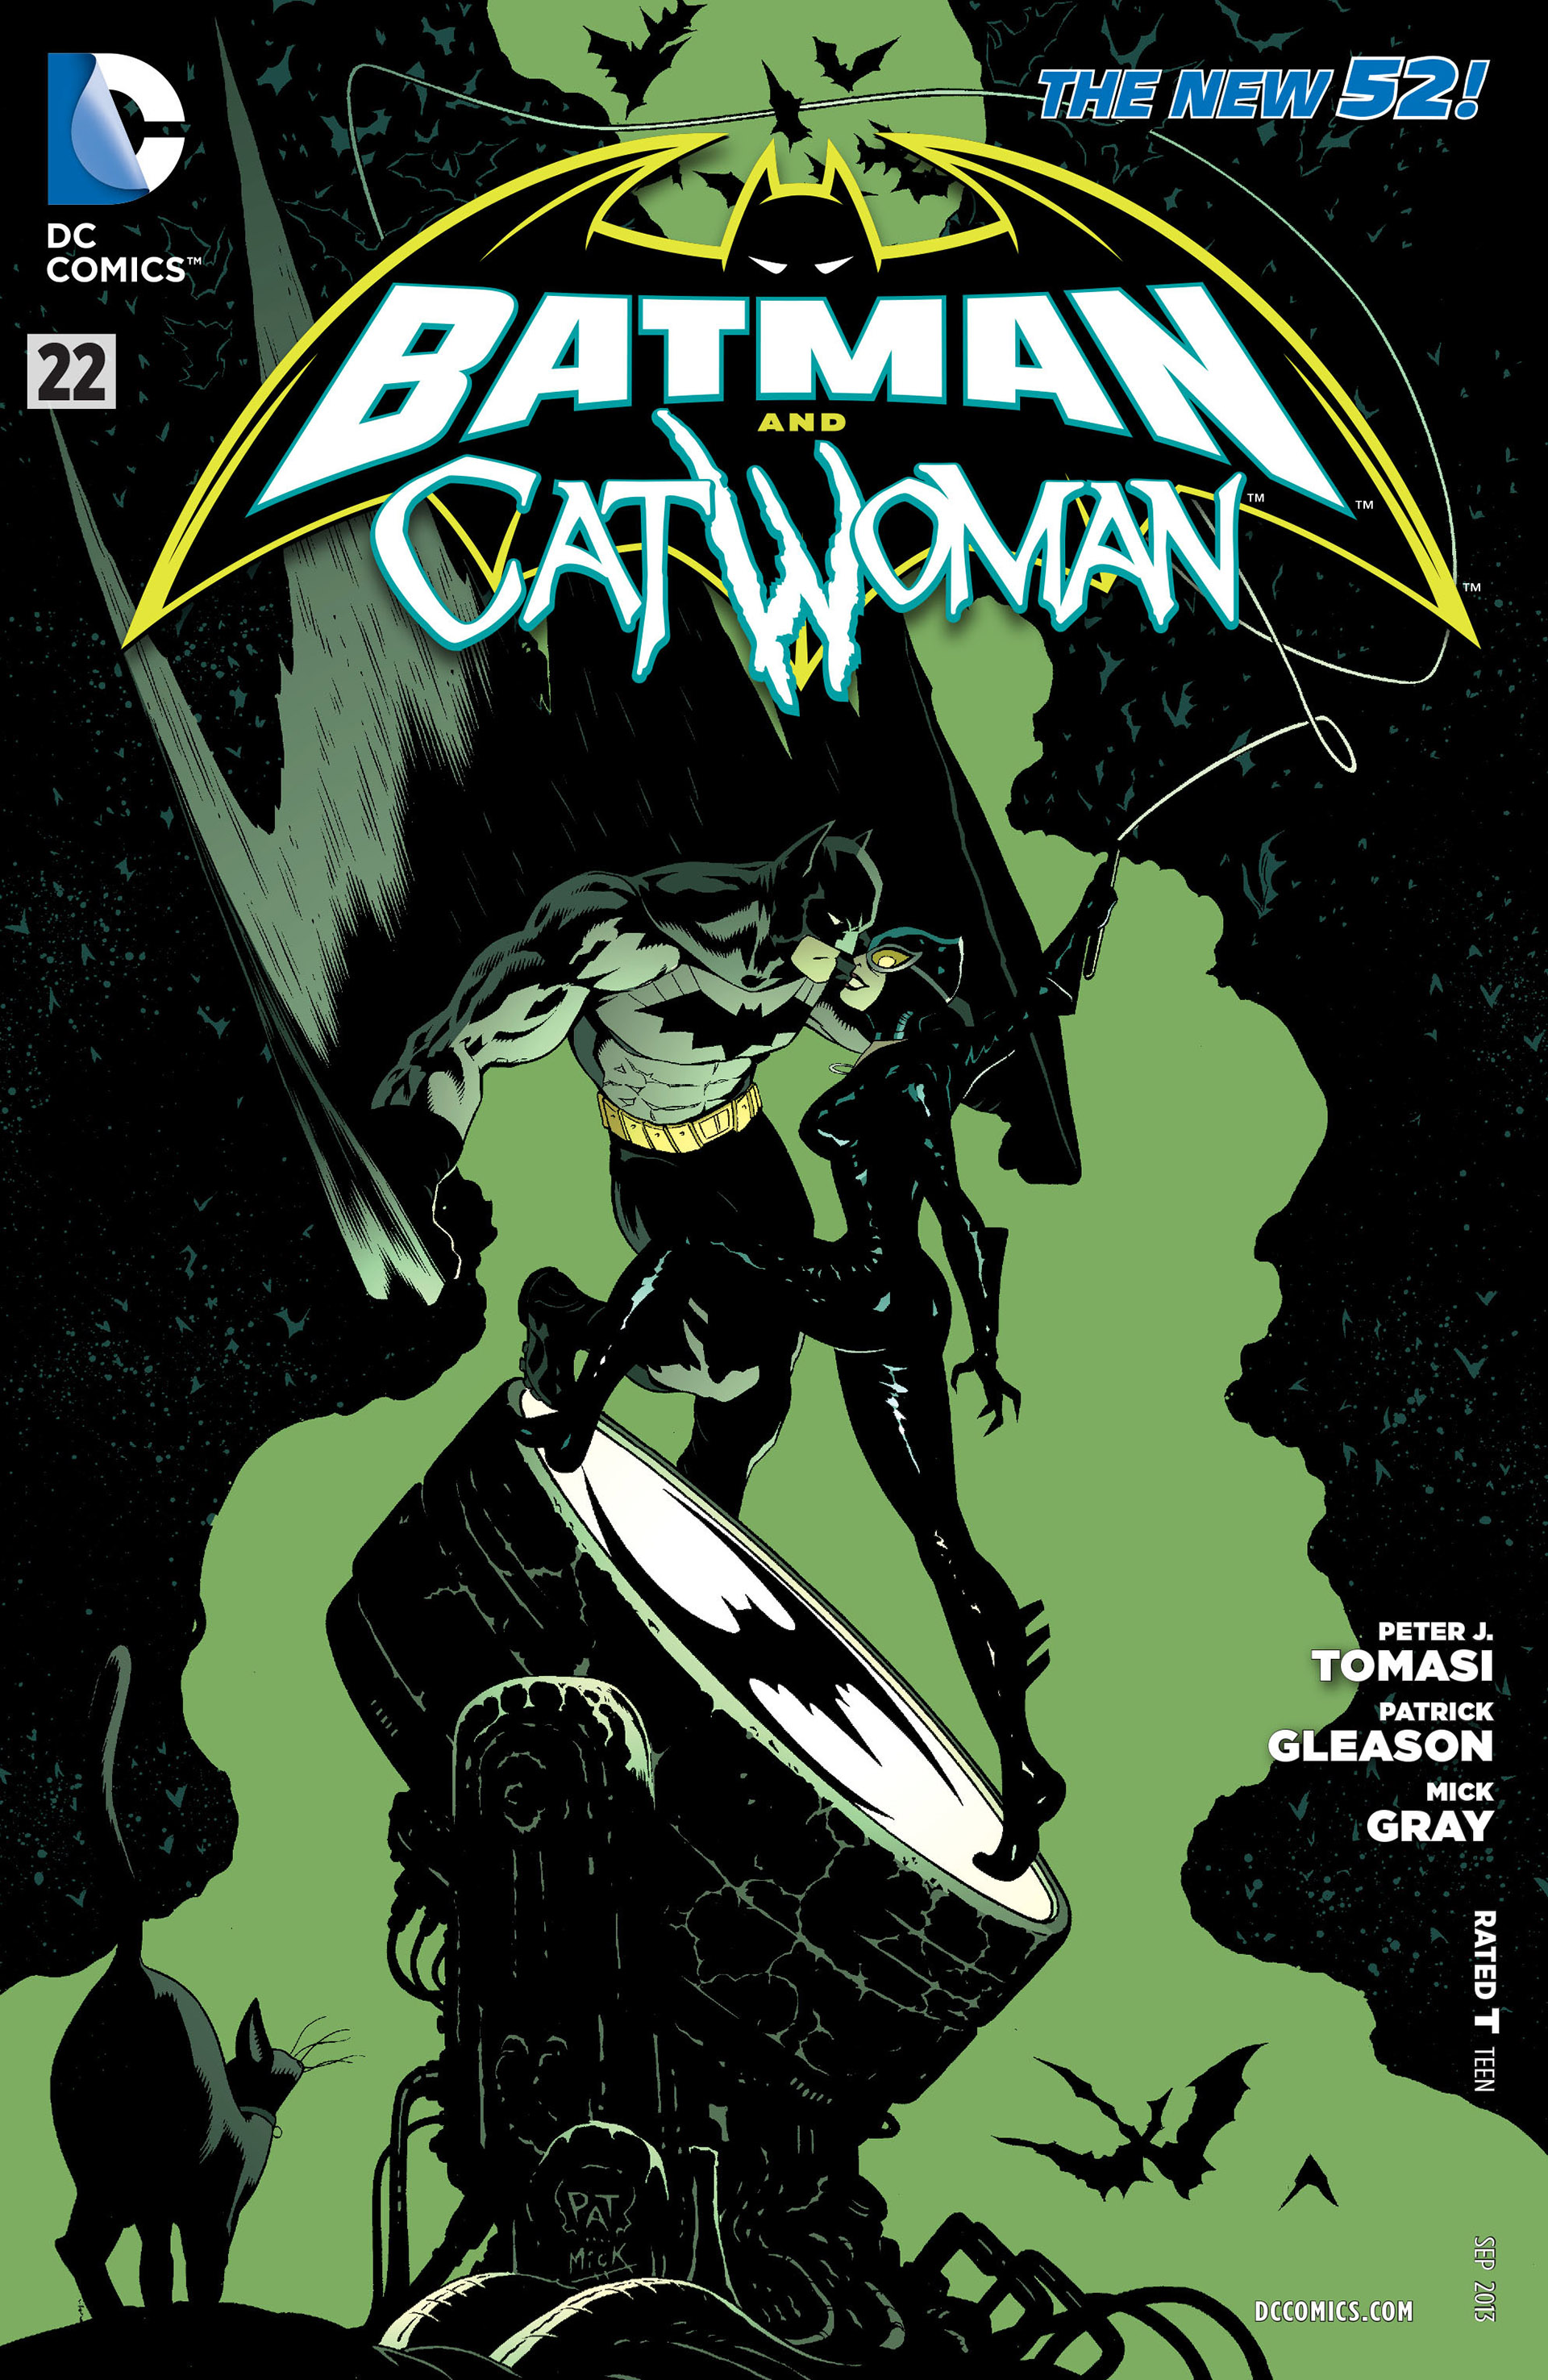 Read online Batman and Robin (2011) comic -  Issue #22 - Batman and Catwoman - 1